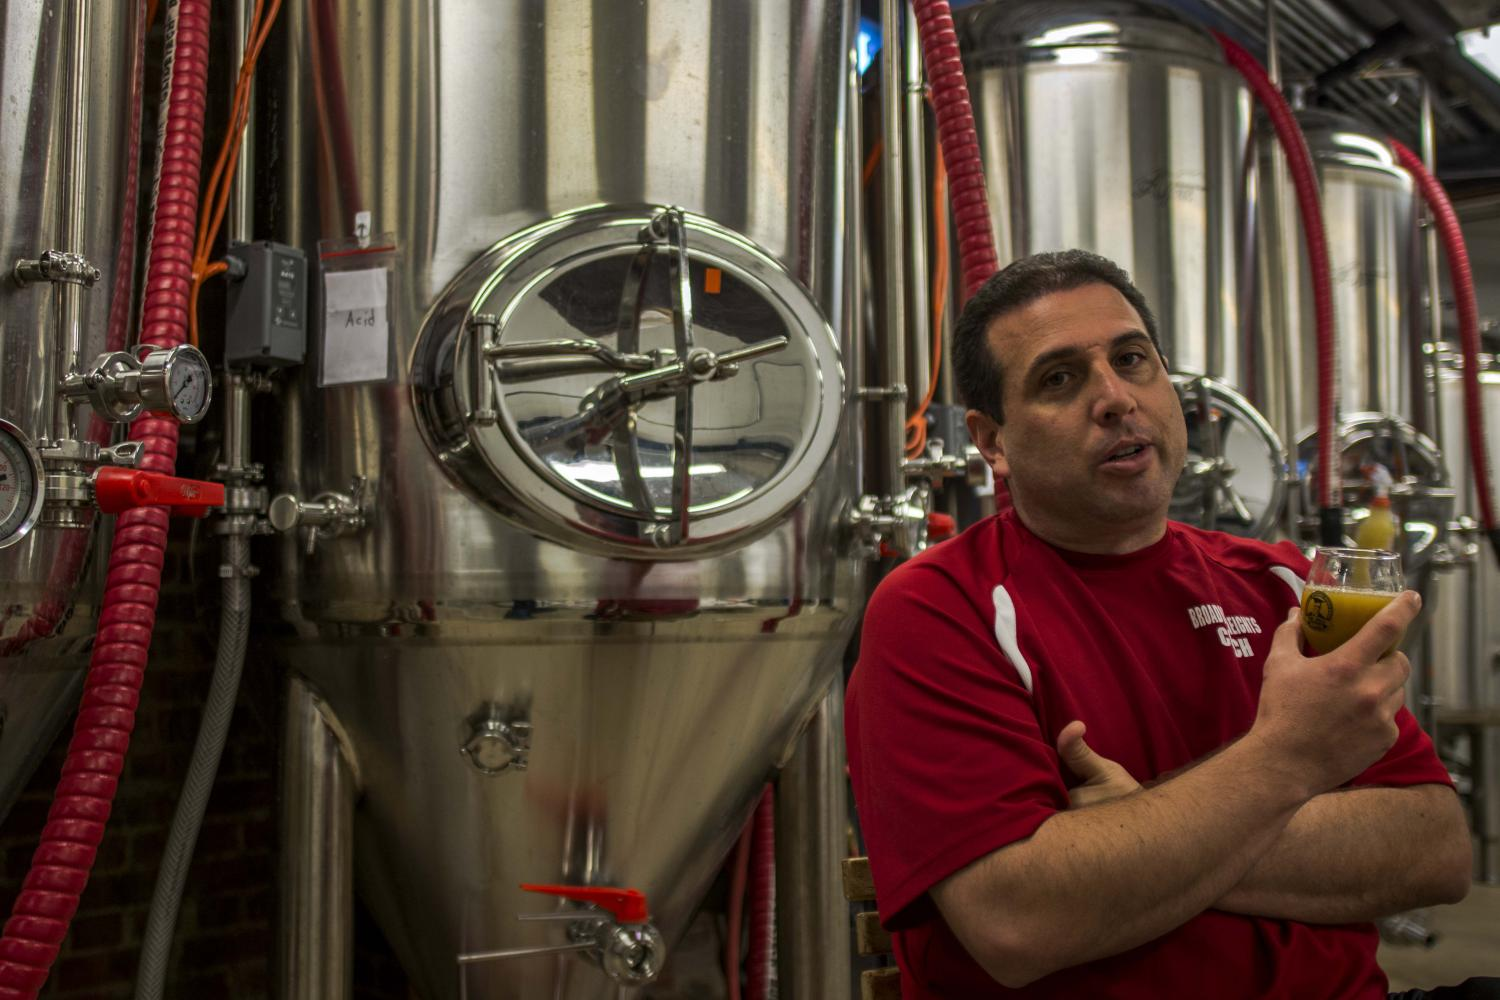 The Jolly Scholar celebrated the opening of its brewery project from Sept. 8-10.